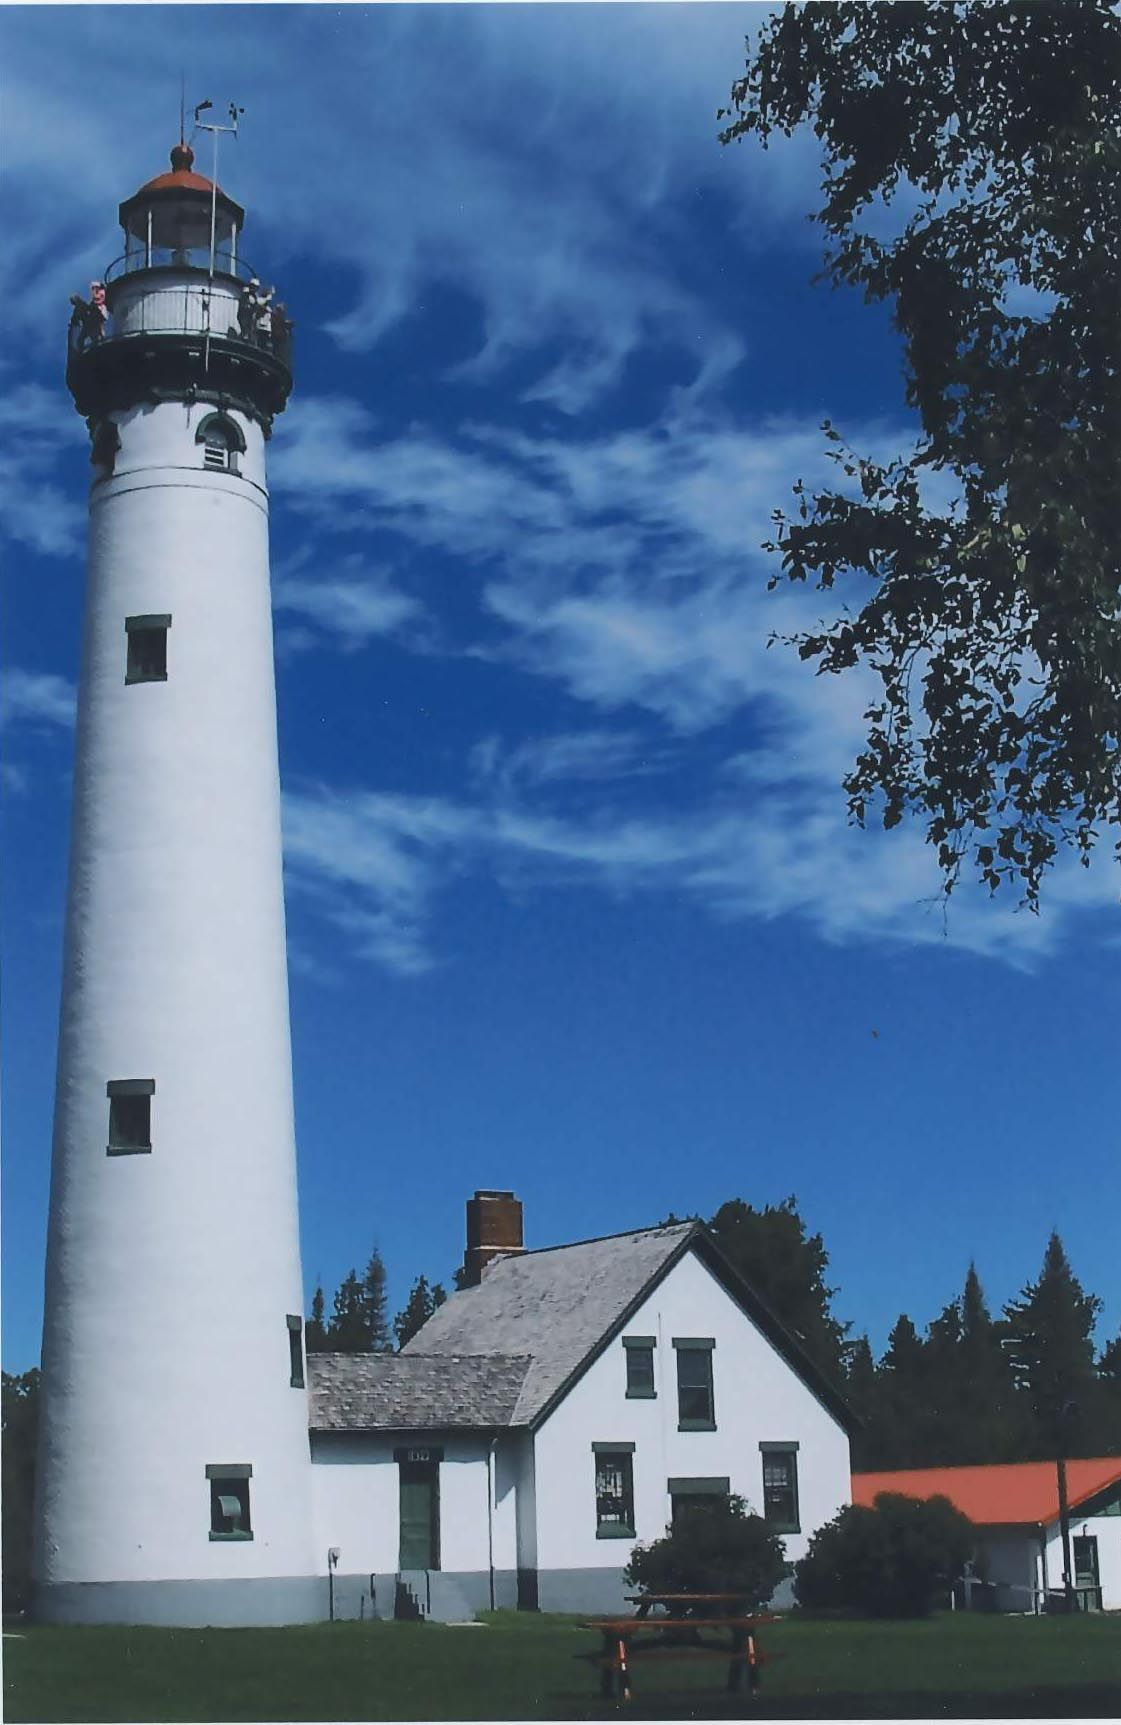 The Lighthouses of Presque Isle MichiganMichigan has a